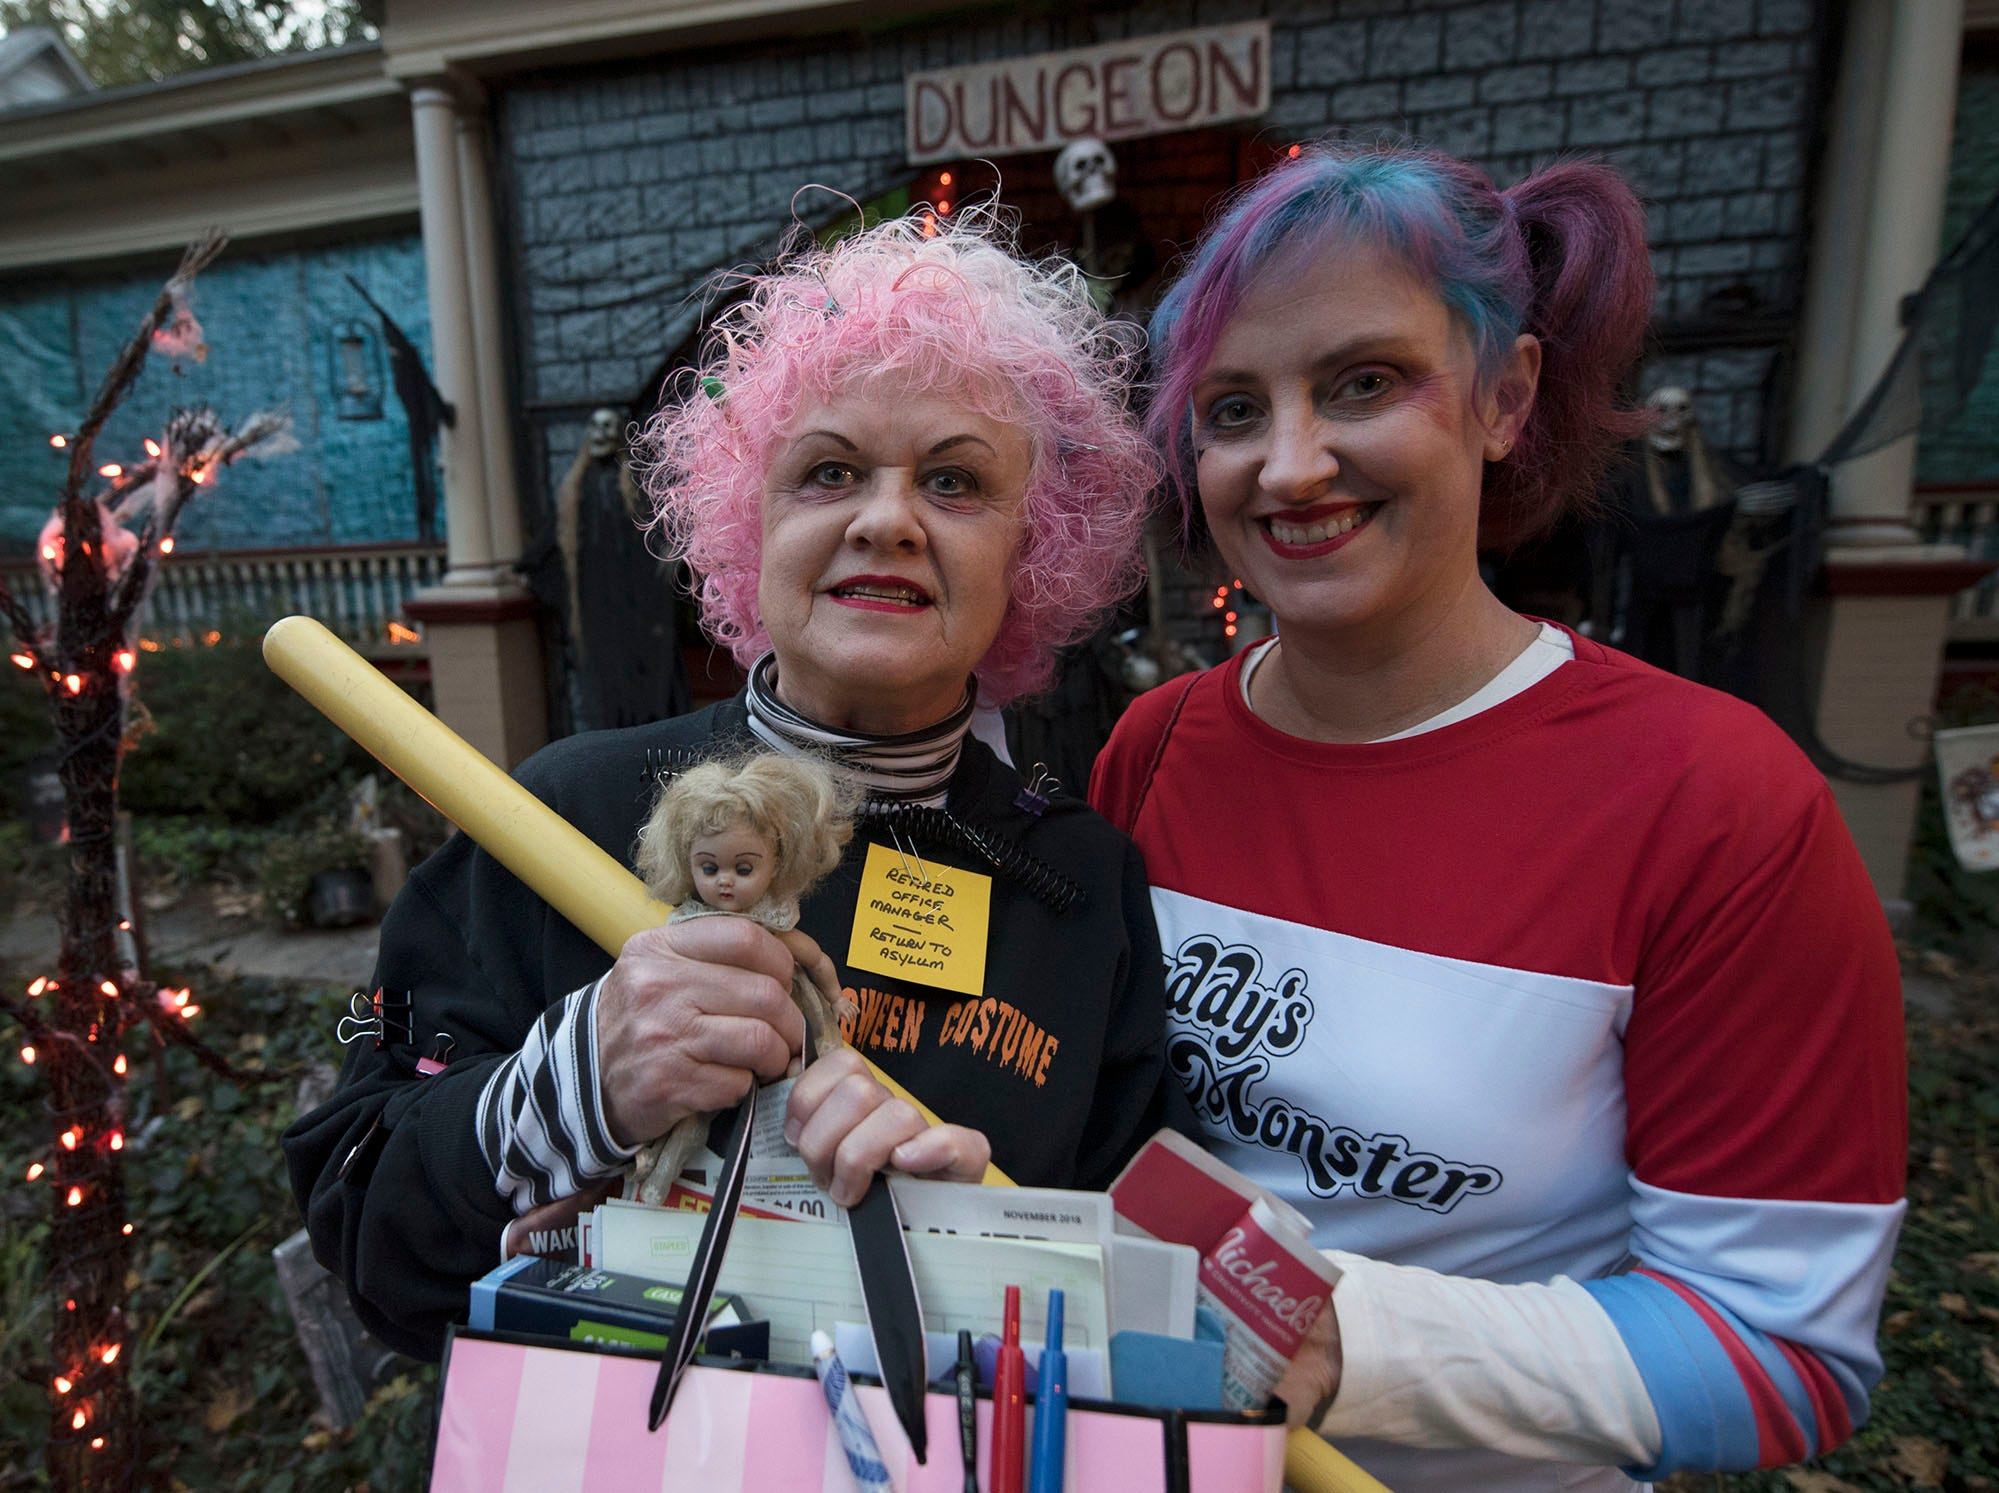 Maggie O'Sullivan, left, and Heather Cooper wear their Halloween costumes. Bob and Sarah Prince hosted their annual Halloween Haunted House at 47 Fifth Avenue, Chambersburg, do the delight of trick-or-treaters.